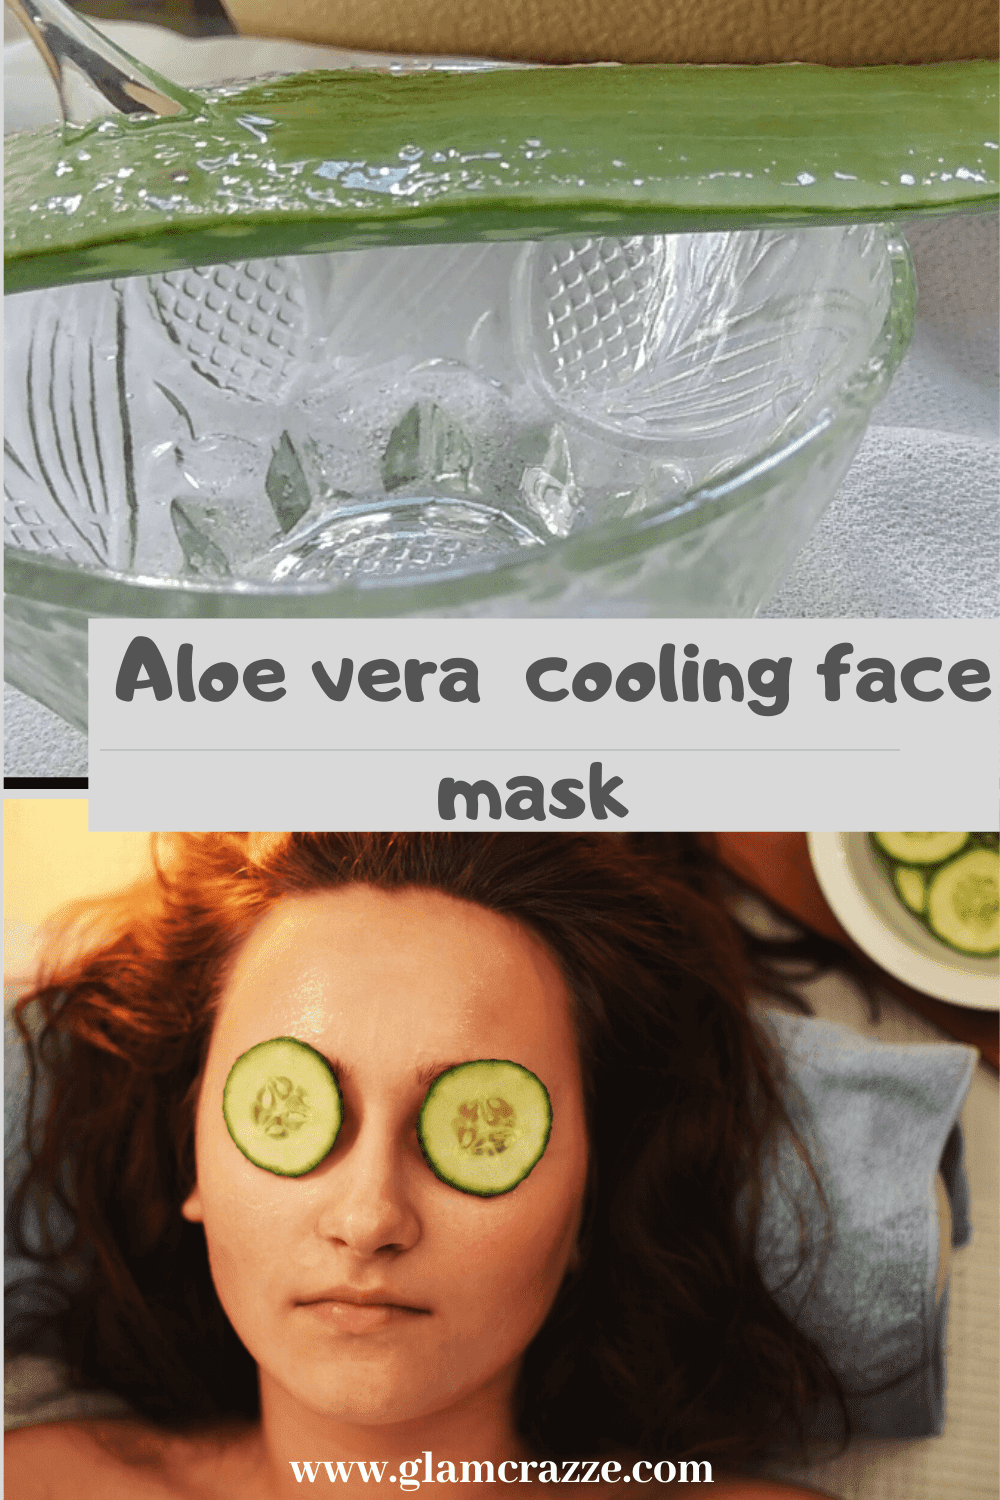 How to use aloe vera hydrating mask on face